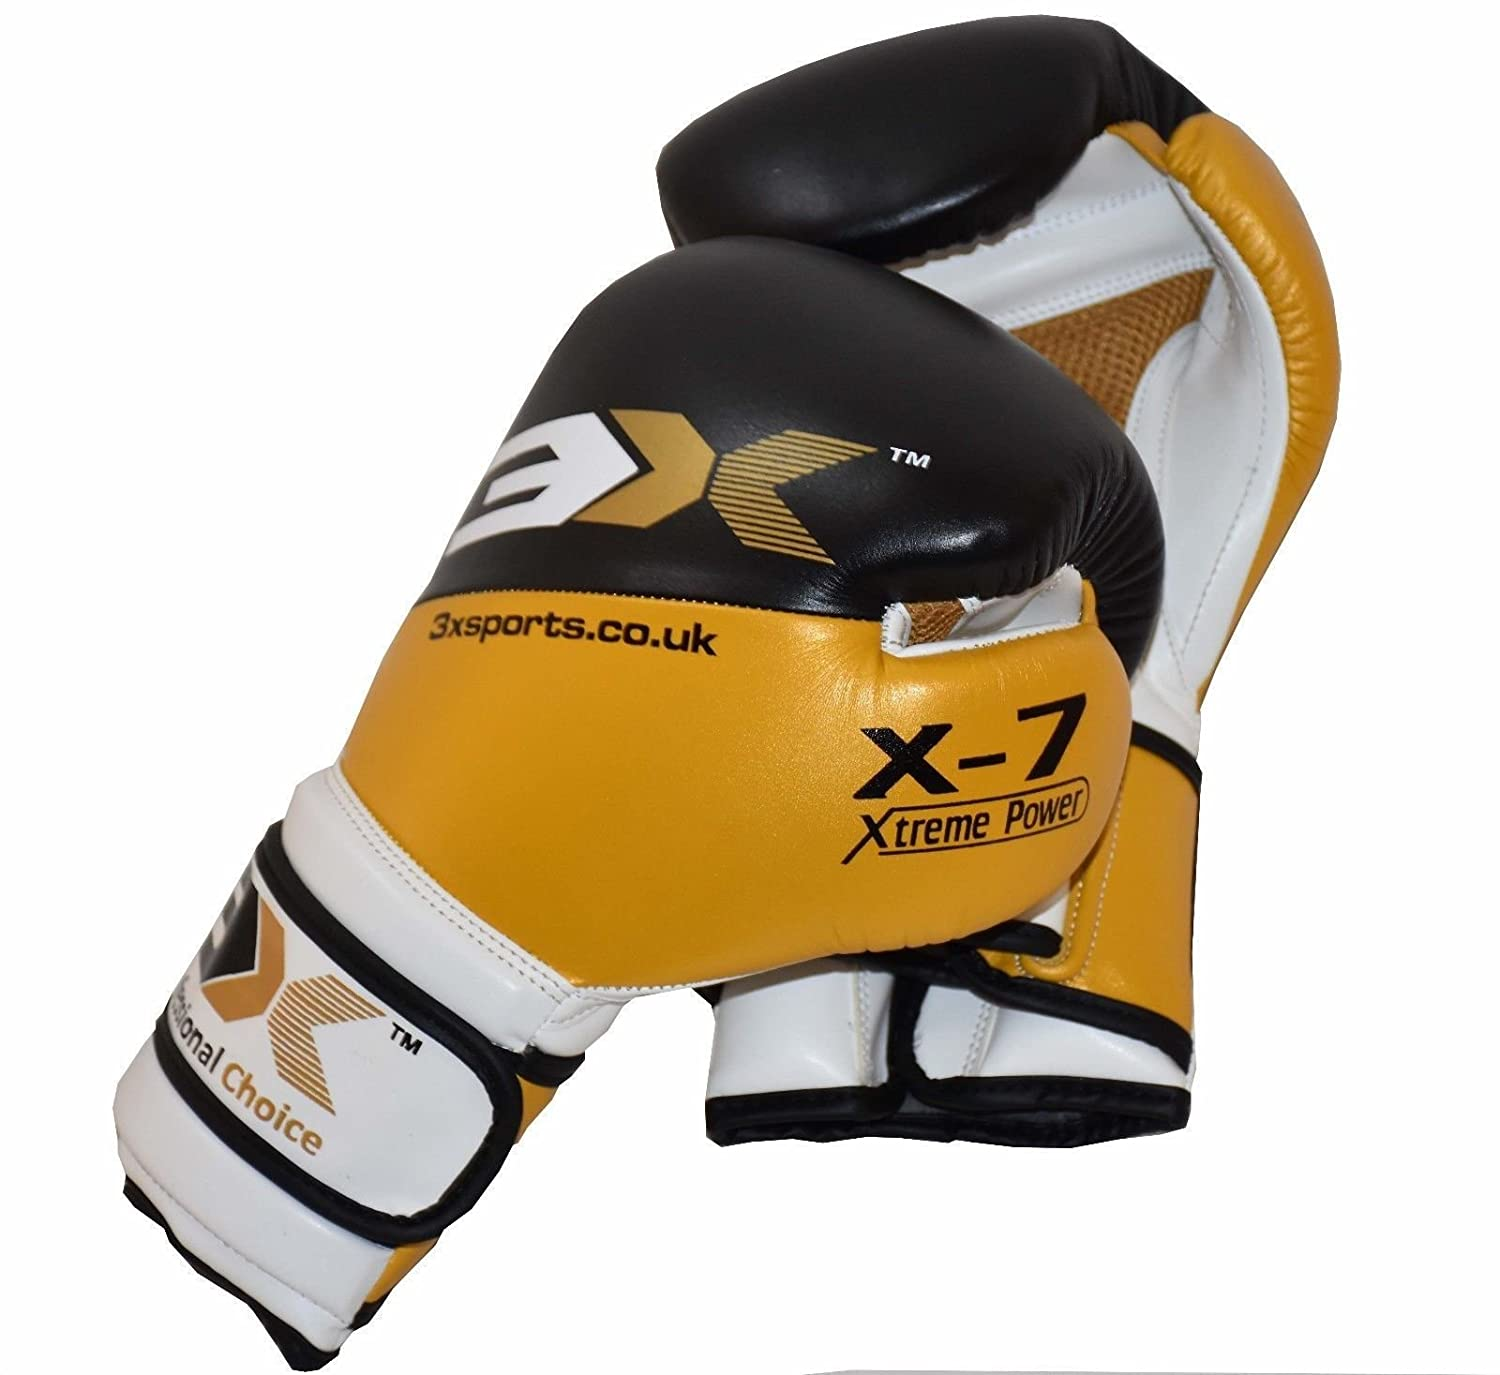 3X Professional Choice Boxing Gloves Sparring Punch Bag Fight Muay, Thai Kick Boxing MMA UFC Martial Arts Training Grappling and Punching Bag Padded Mitt 3X Sports